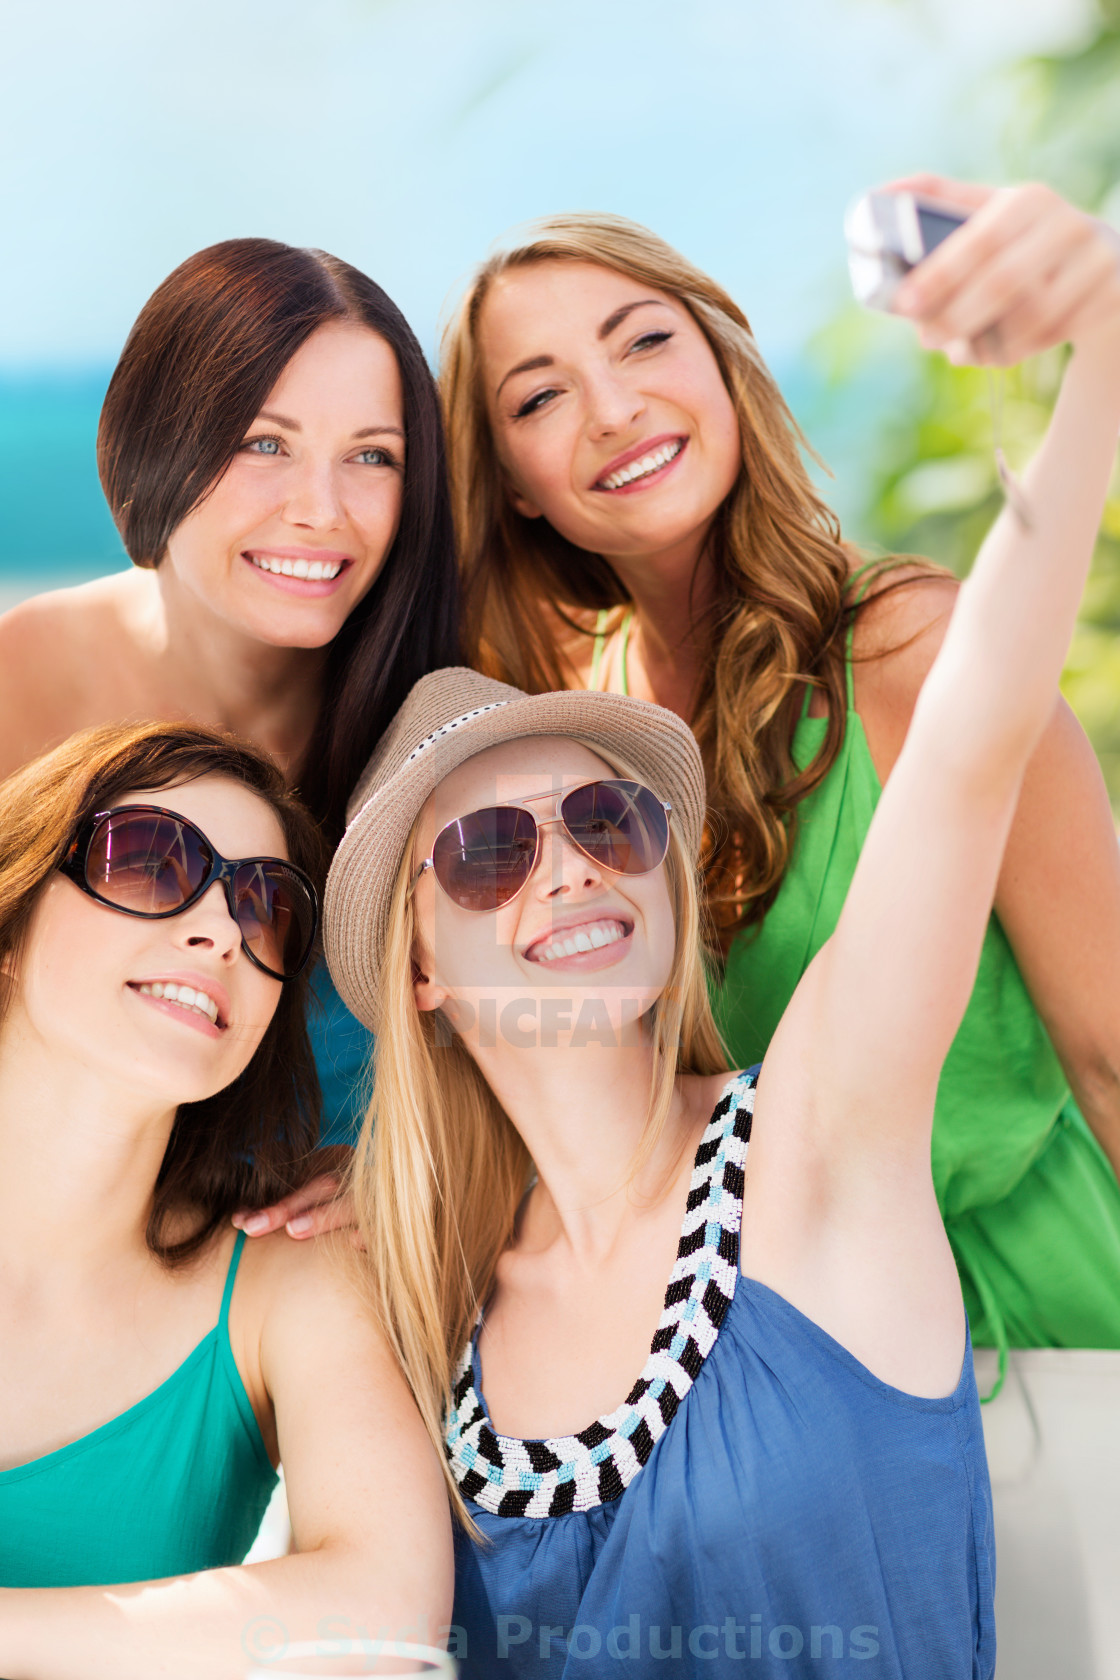 Girls Taking Photo In Cafe On The Beach License Download